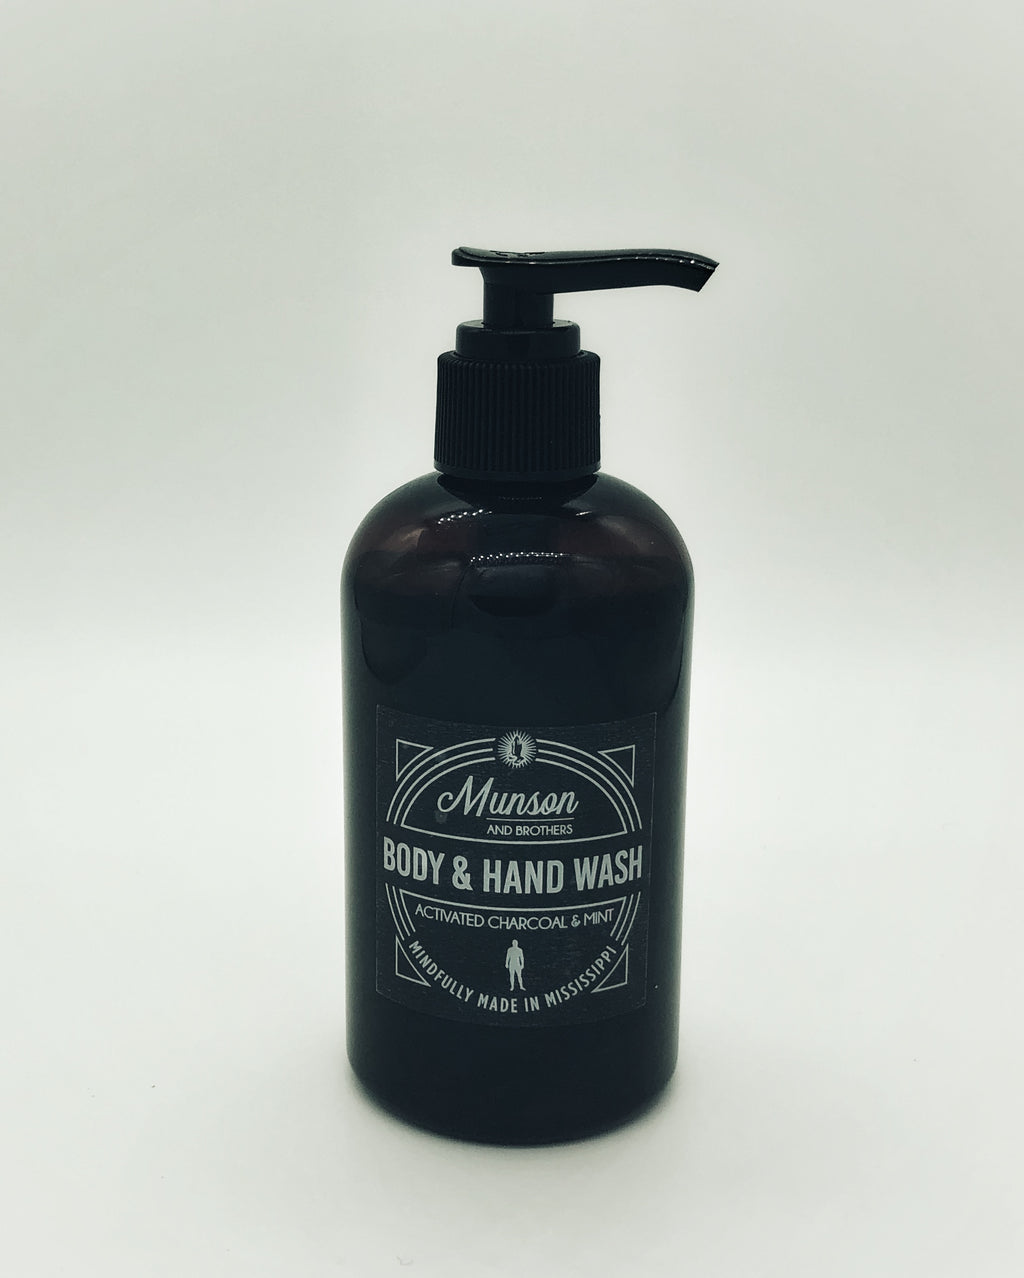 Munson and Brothers Hand and Body Wash with Mint and Activated Charcoal